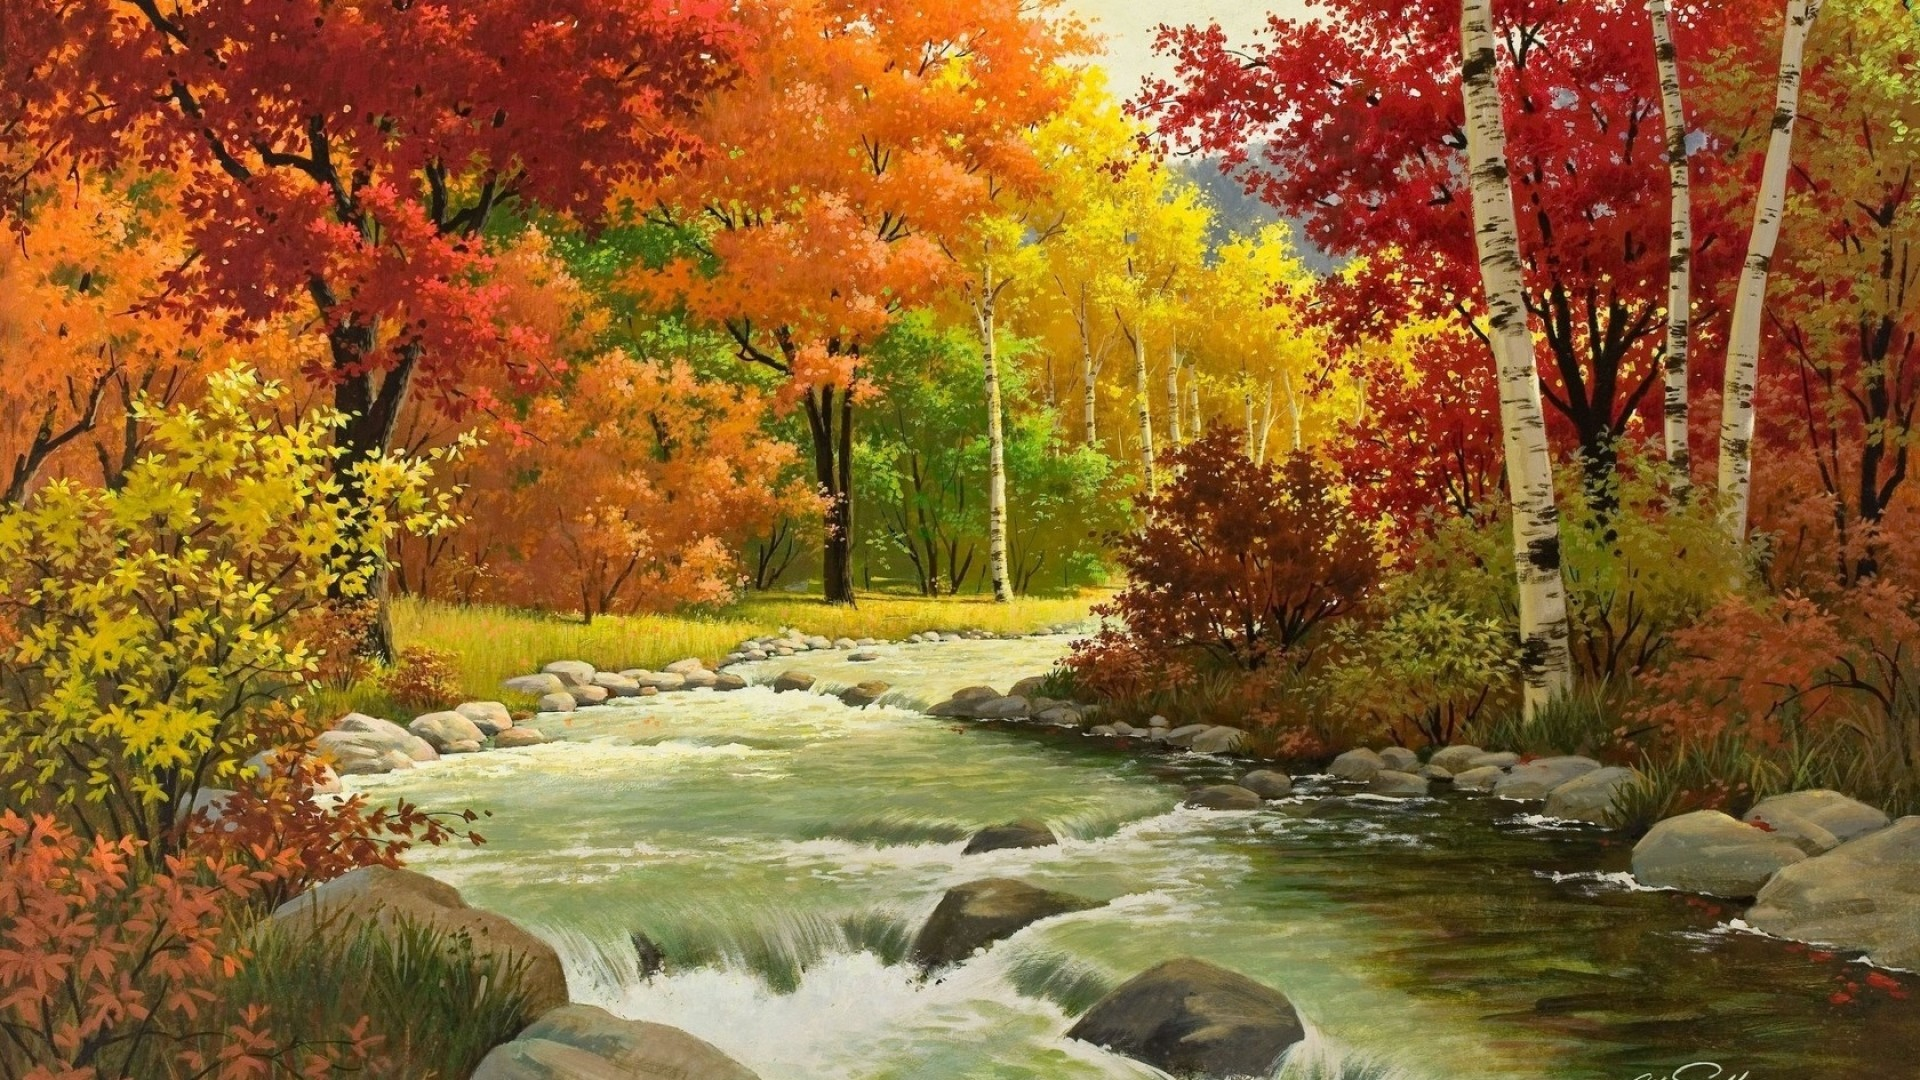 1920x1080 Preview wallpaper autumn, landscape, painting, river, wood